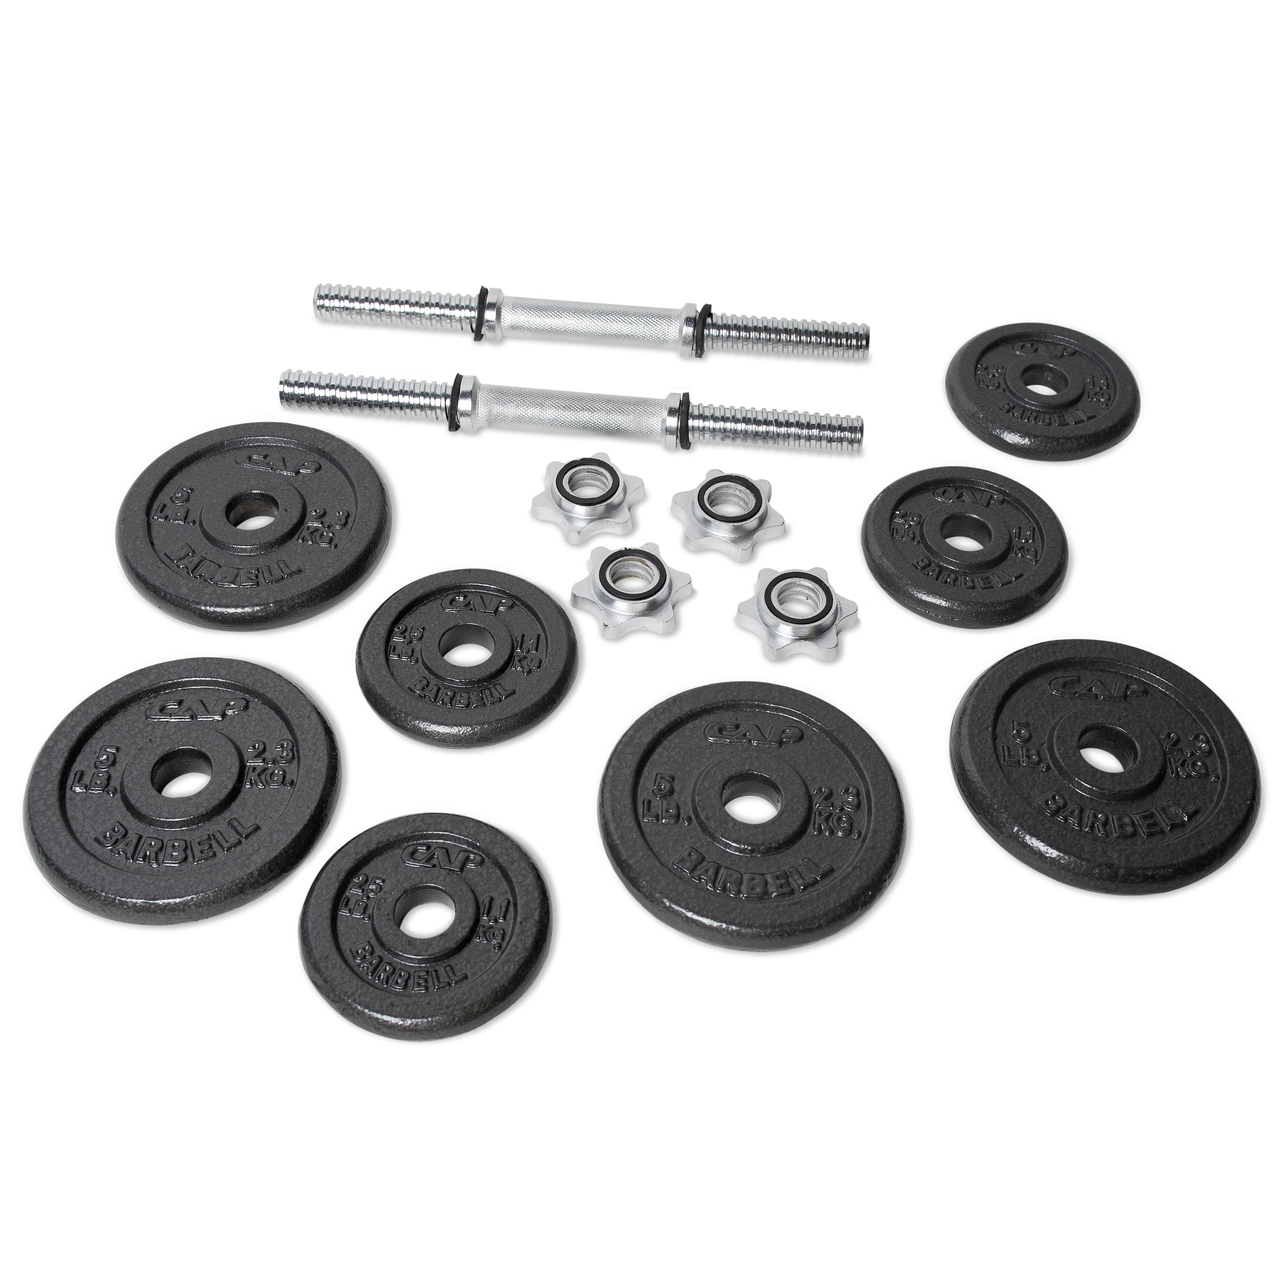 CAP Barbell RSWB-40TP 40 lb. Dumbbell Set, adjustable sit up bench,exercise benches folding